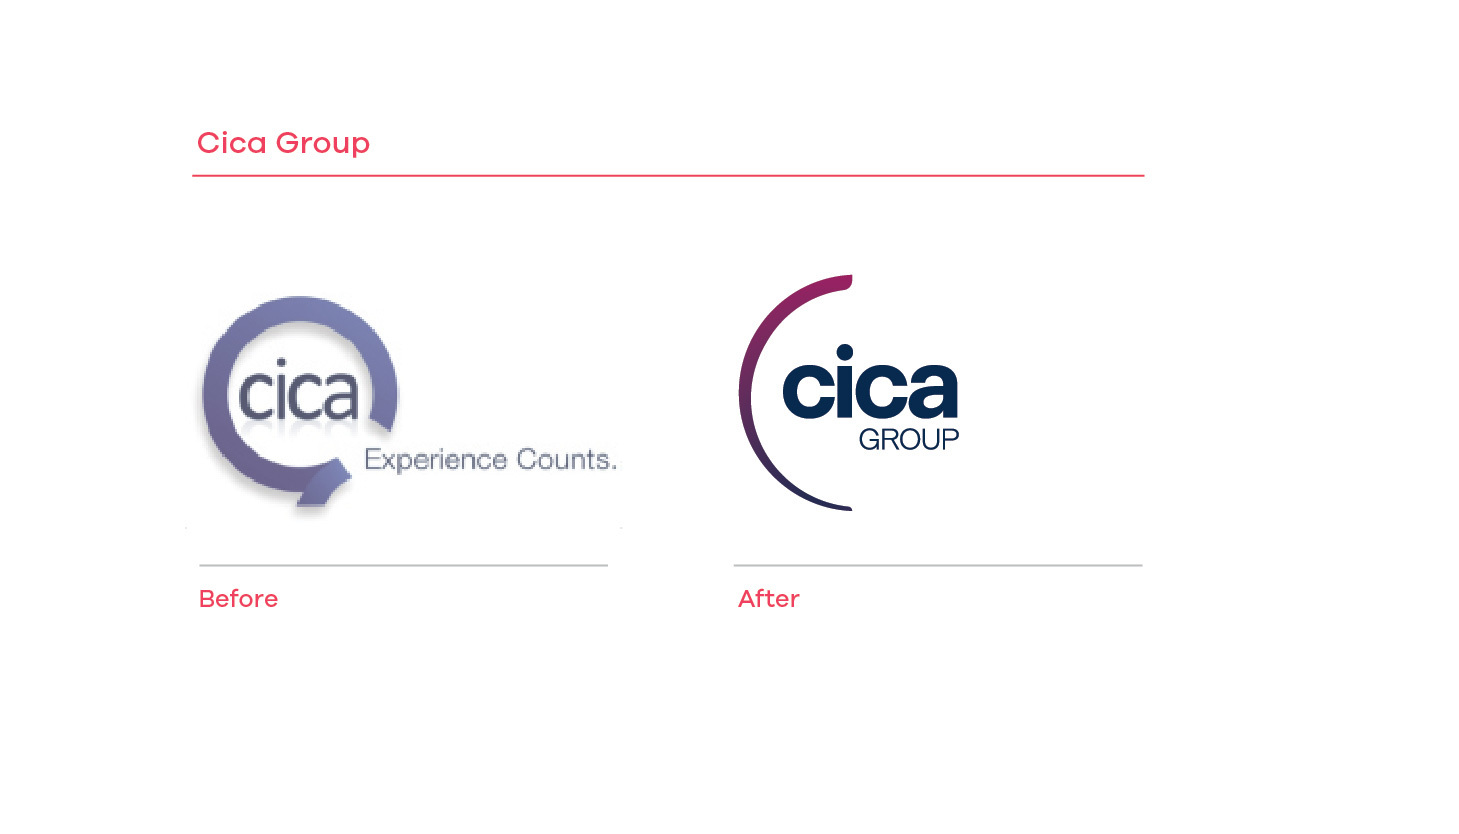 Cica Group before and after branding